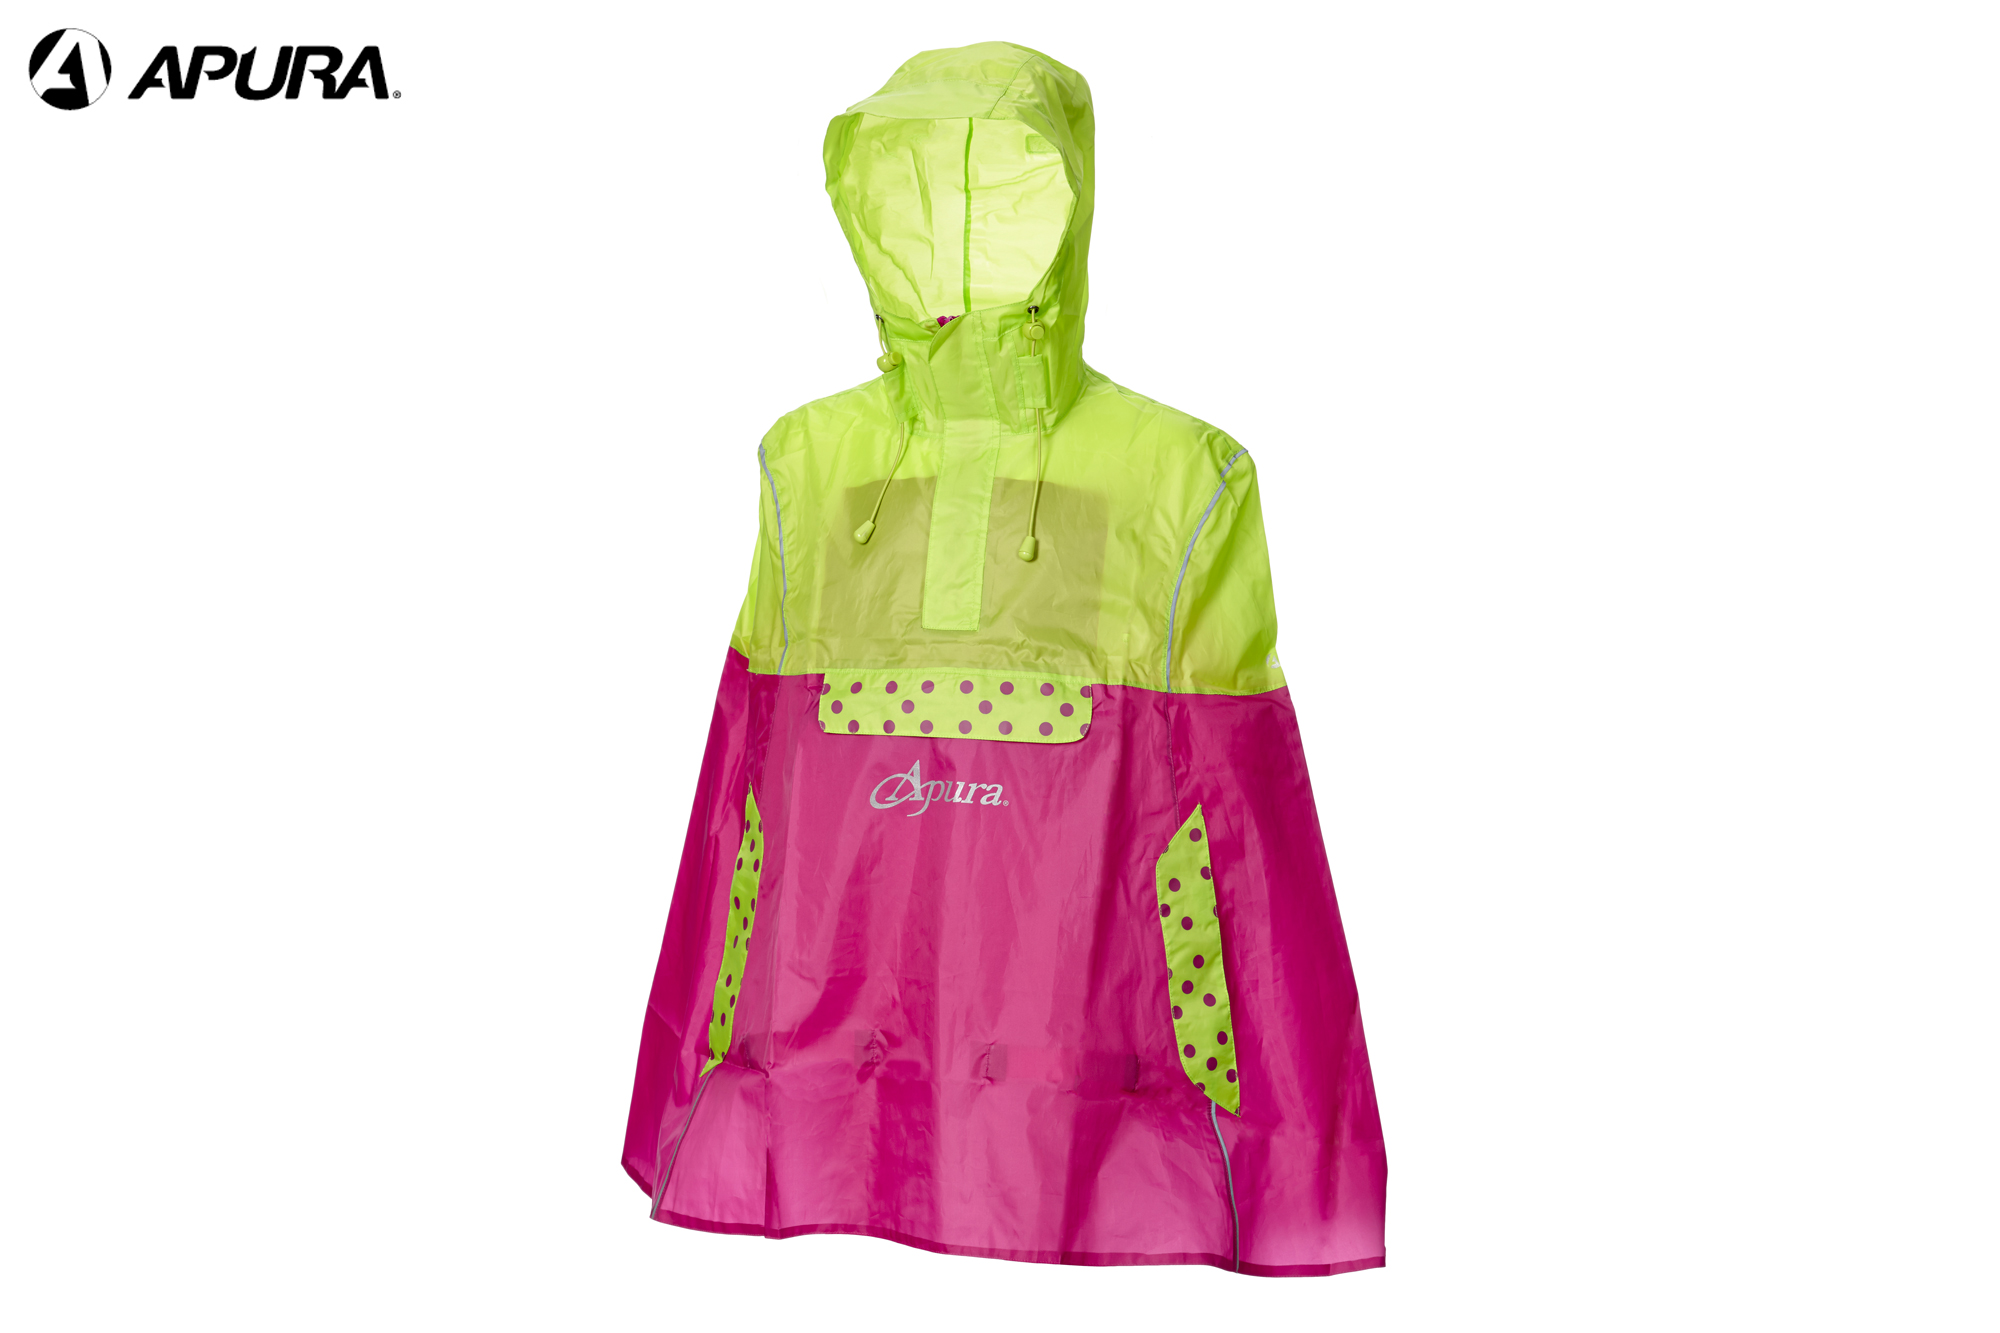 APURA Regencape Little Drop (Poncho) - Kinder